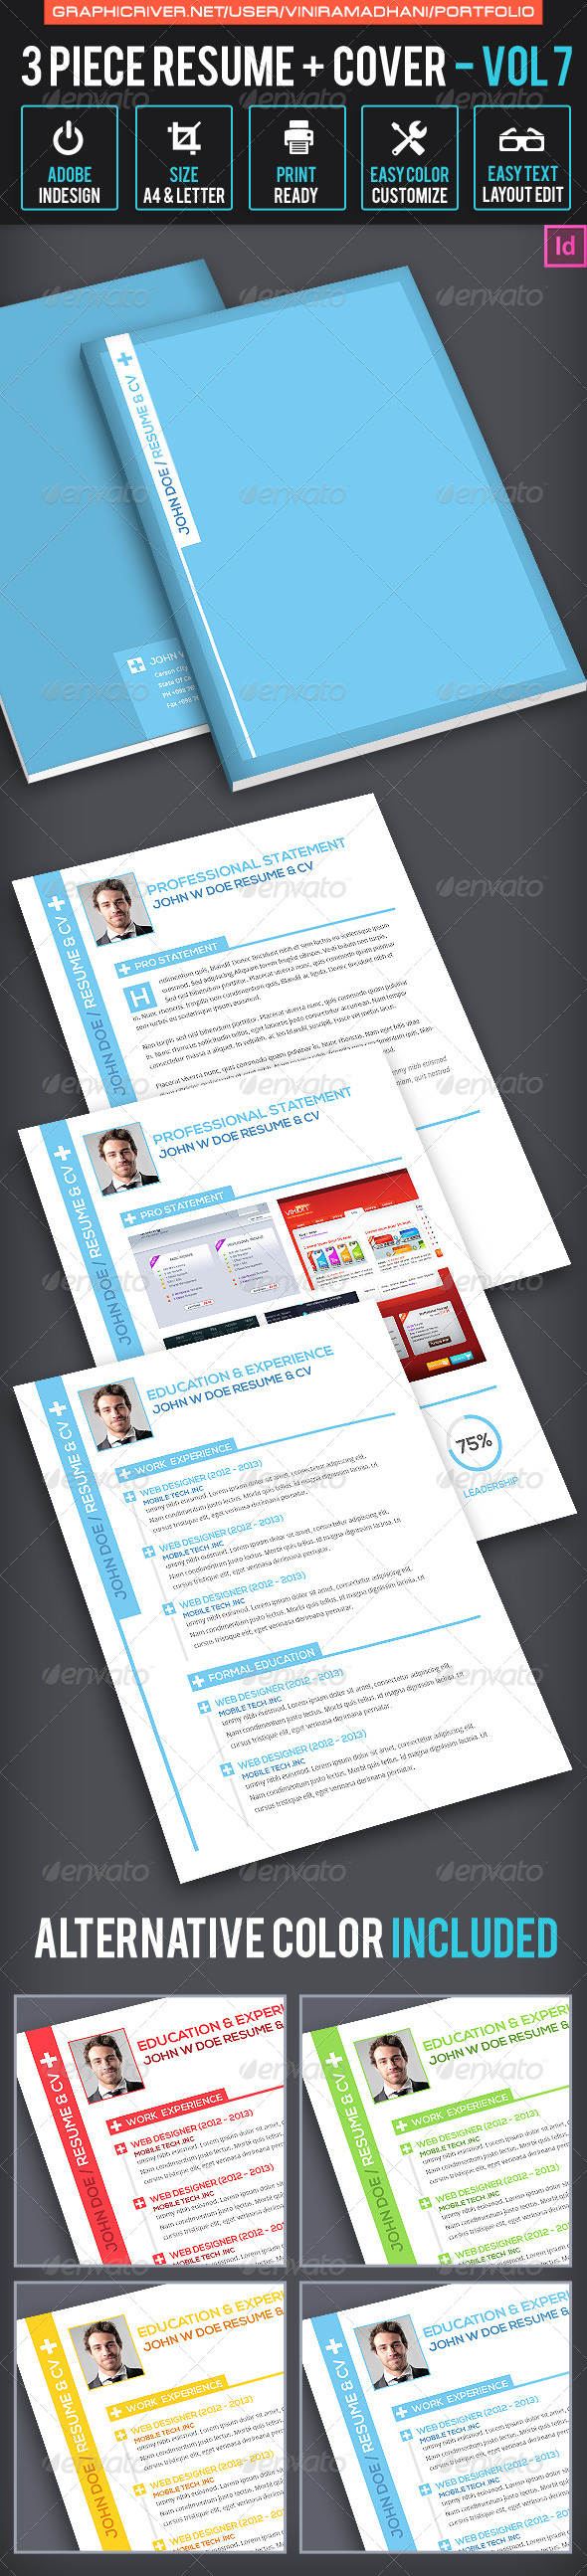 GraphicRiver 3 Piece Resume And Cover Volume 7 6881447